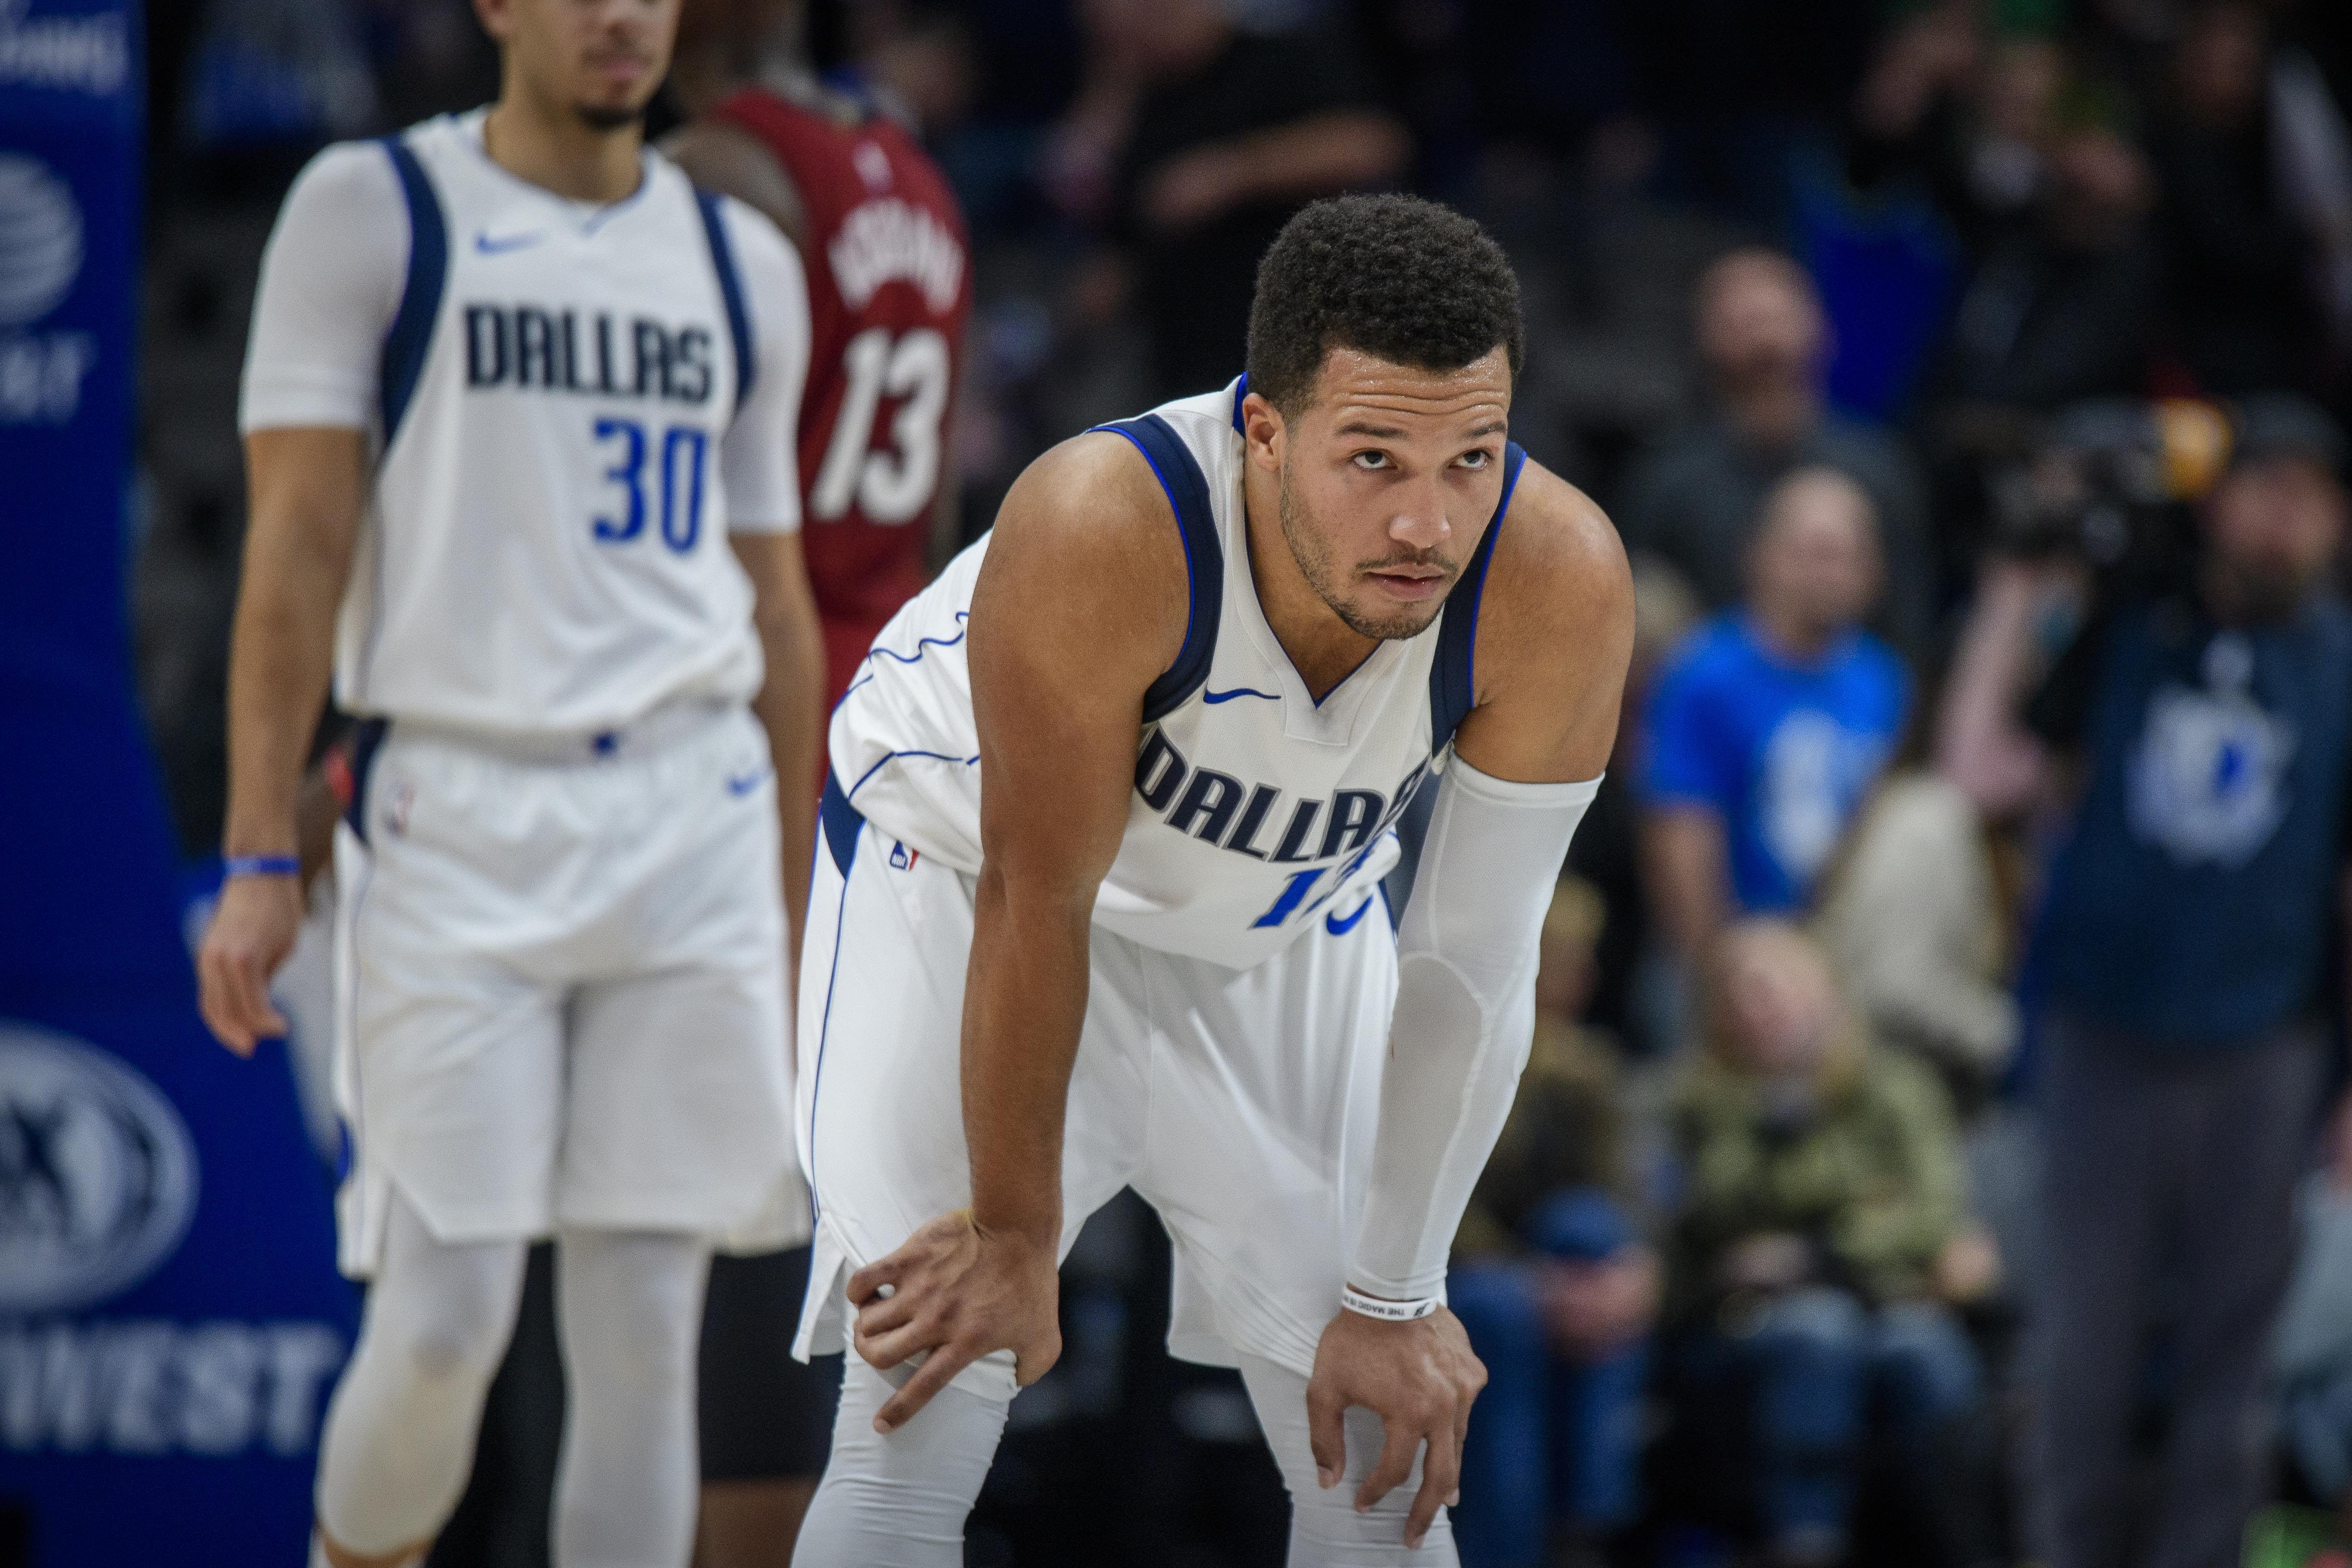 Dallas Mavericks guard Jalen Brunson reacts to missing a shot against the Miami Heat during overtime at the American Airlines Center.